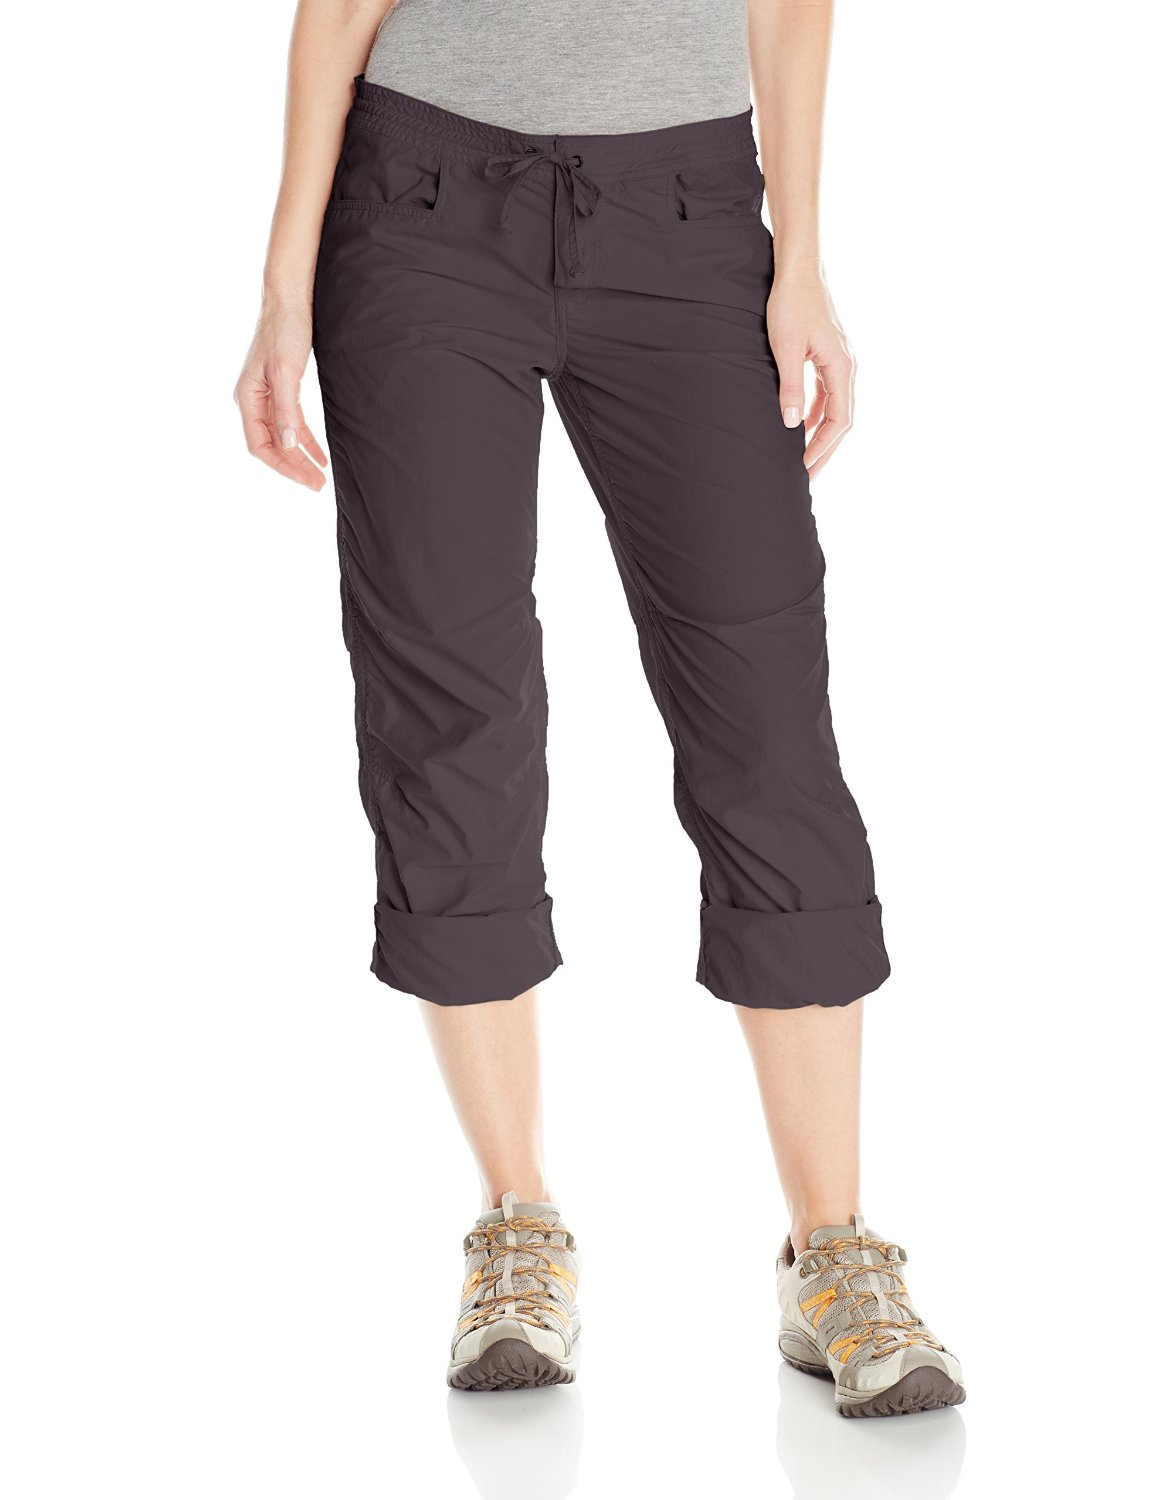 mosquito-repellent-clothes-women's pants